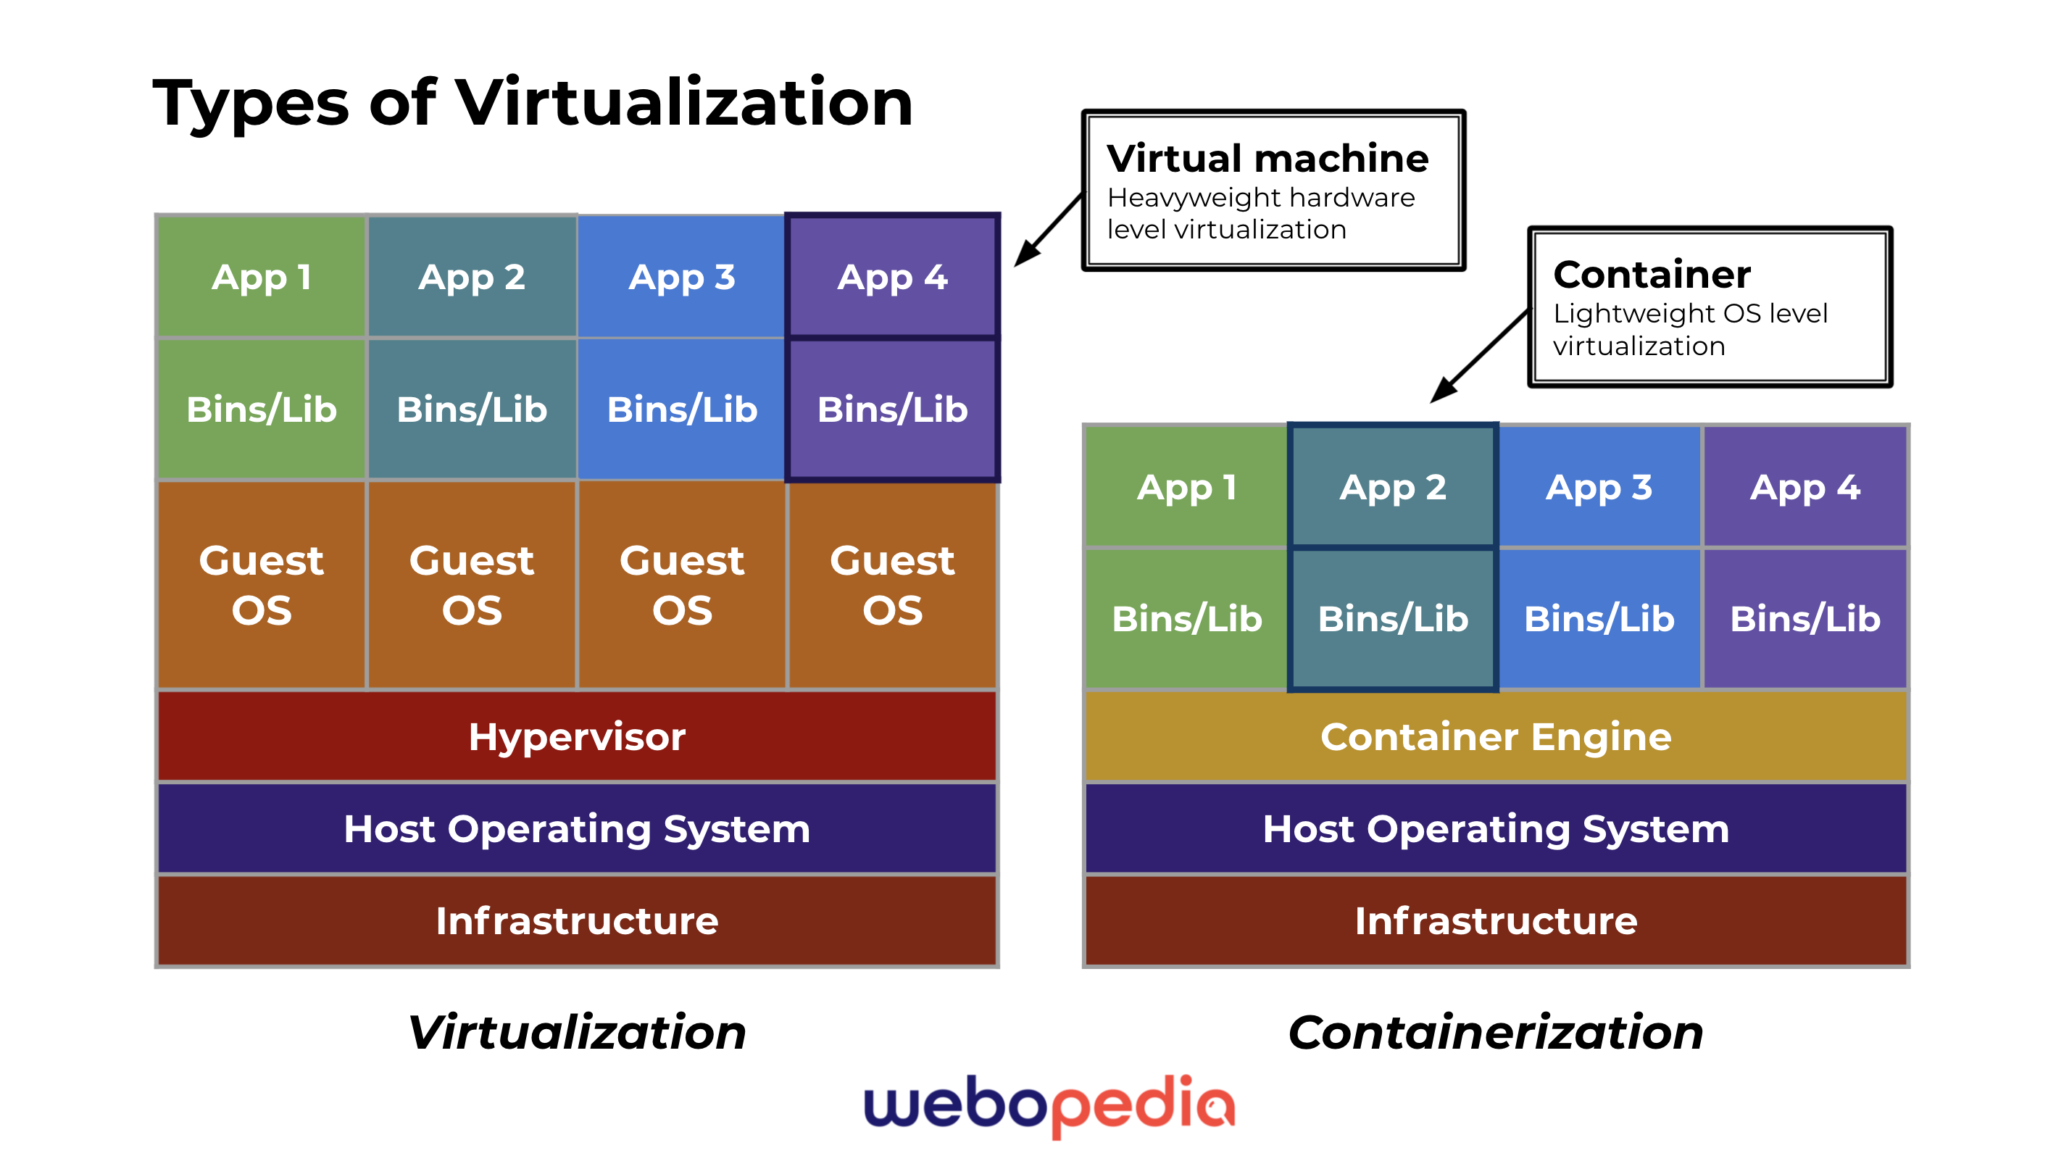 A graphic image showing the differences in virtualization method between virtual machines and containers.